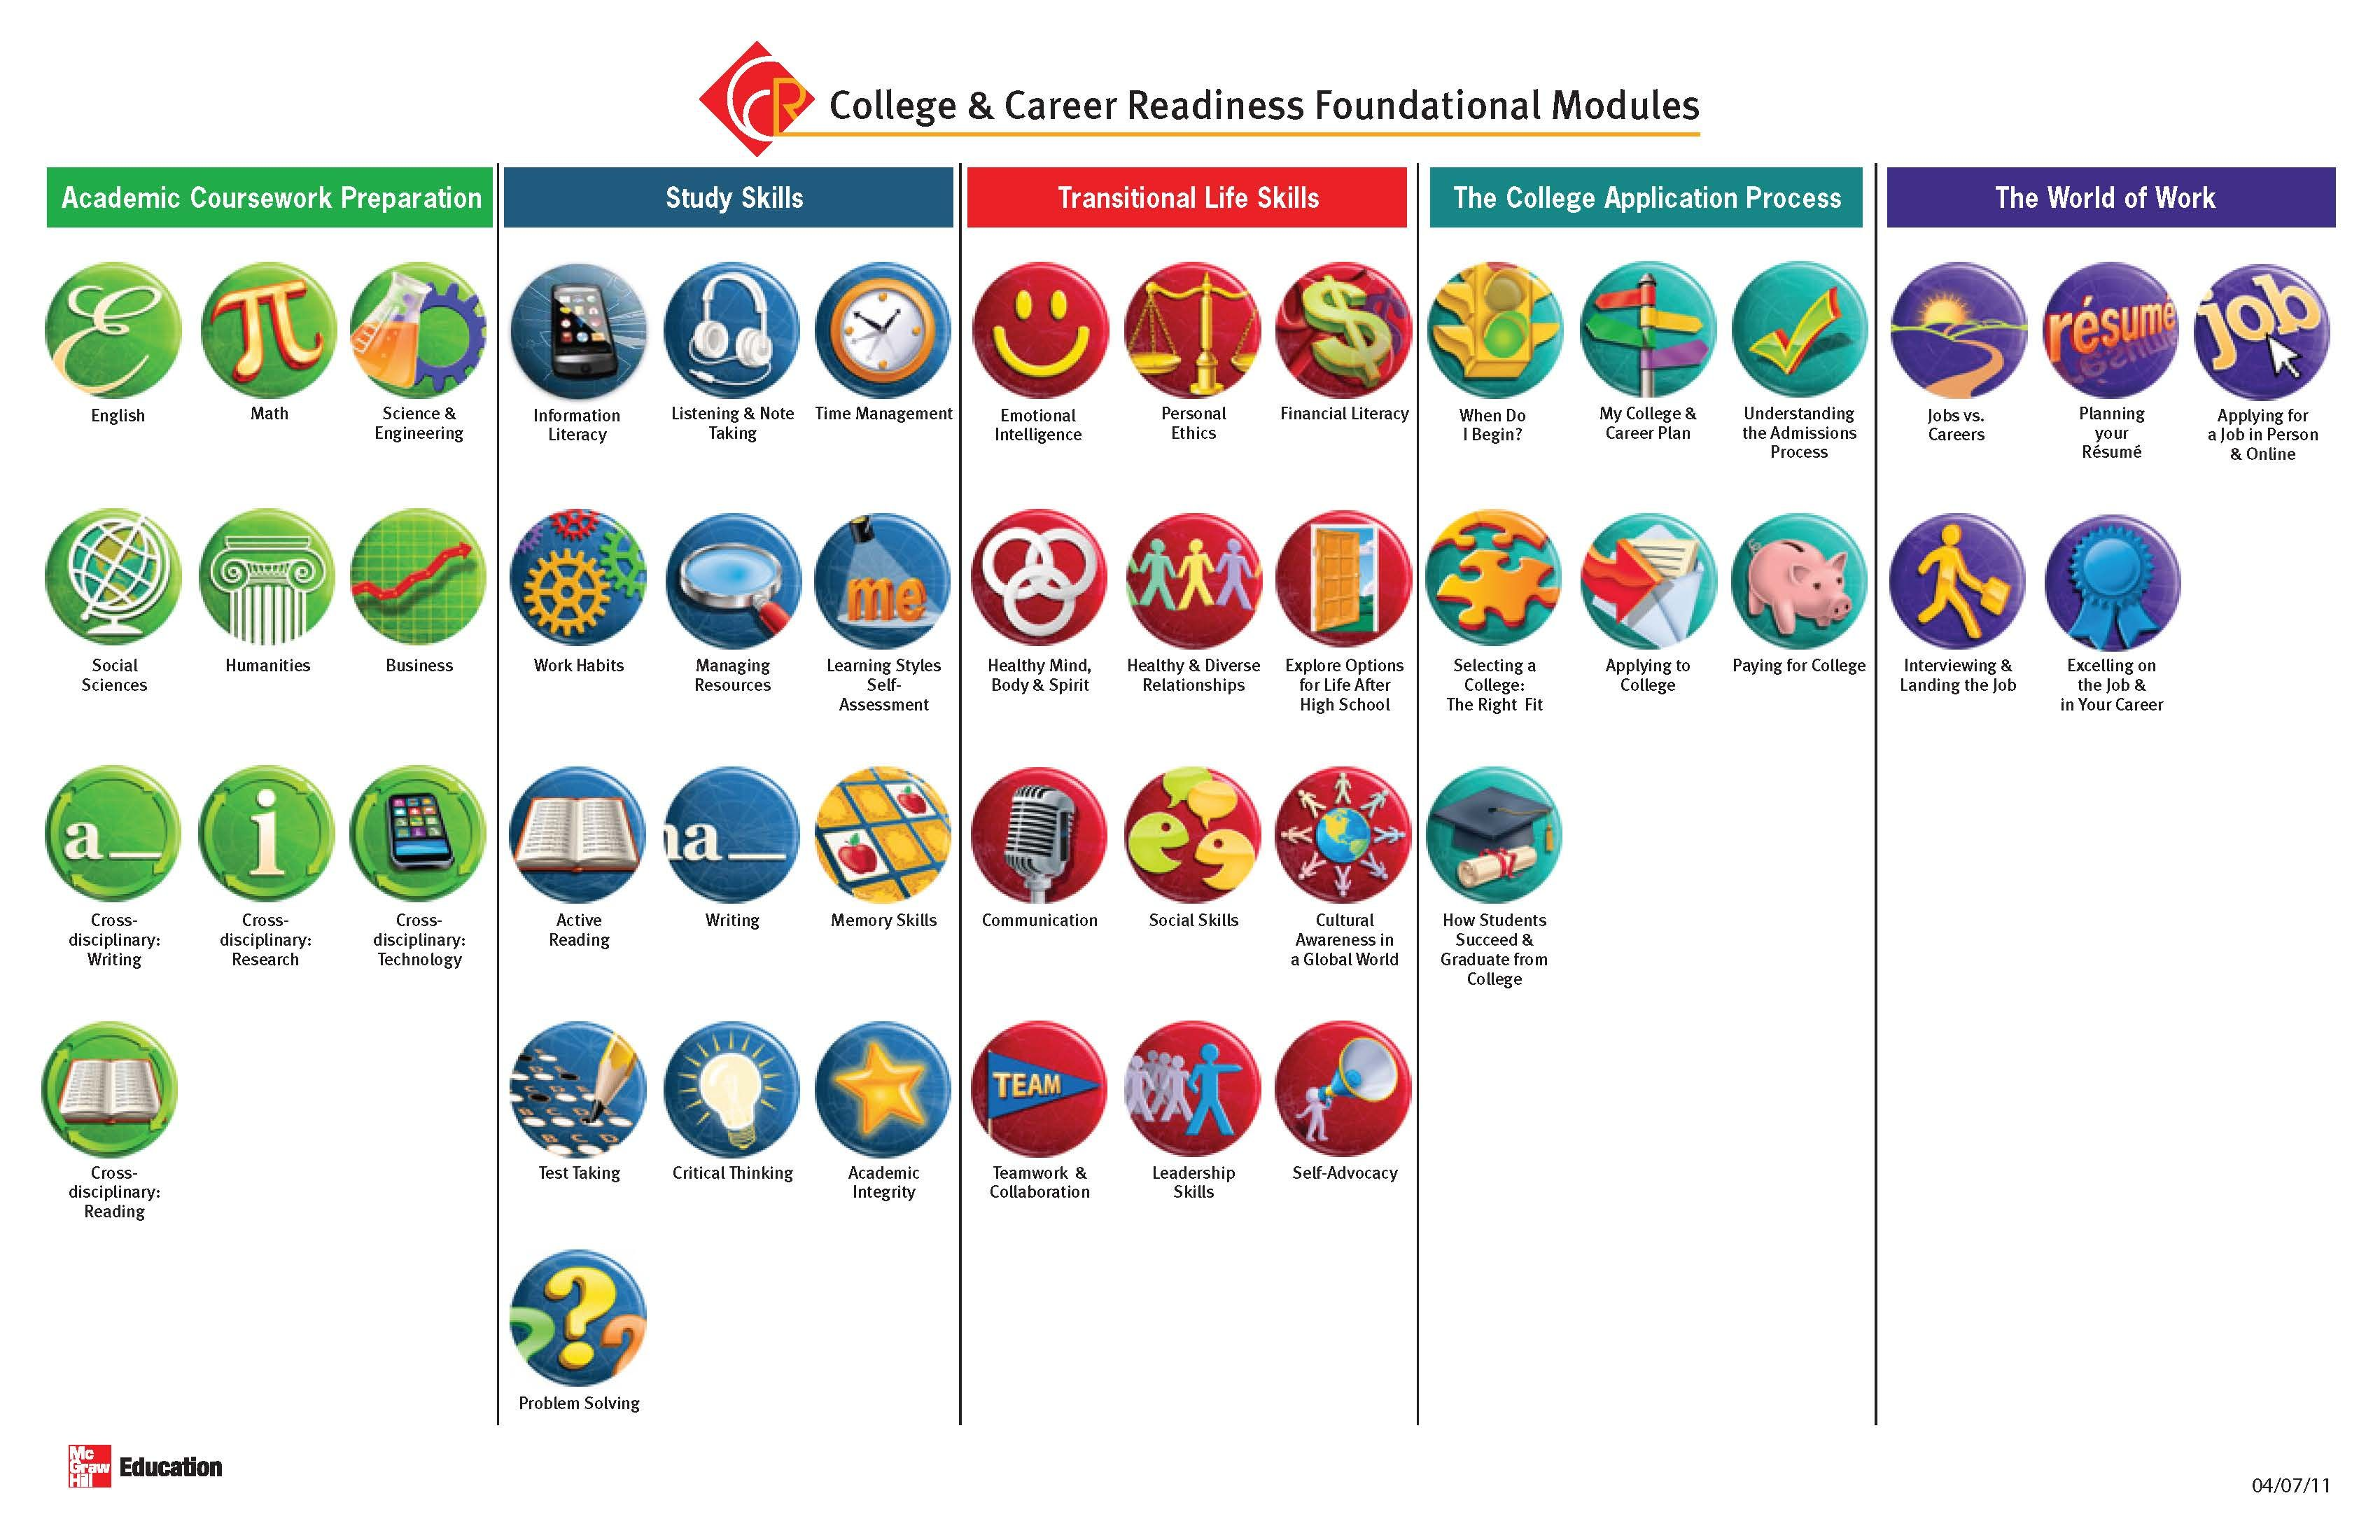 Mcgraw Hill S College Readiness Badge System School Counseling College Readiness Education College